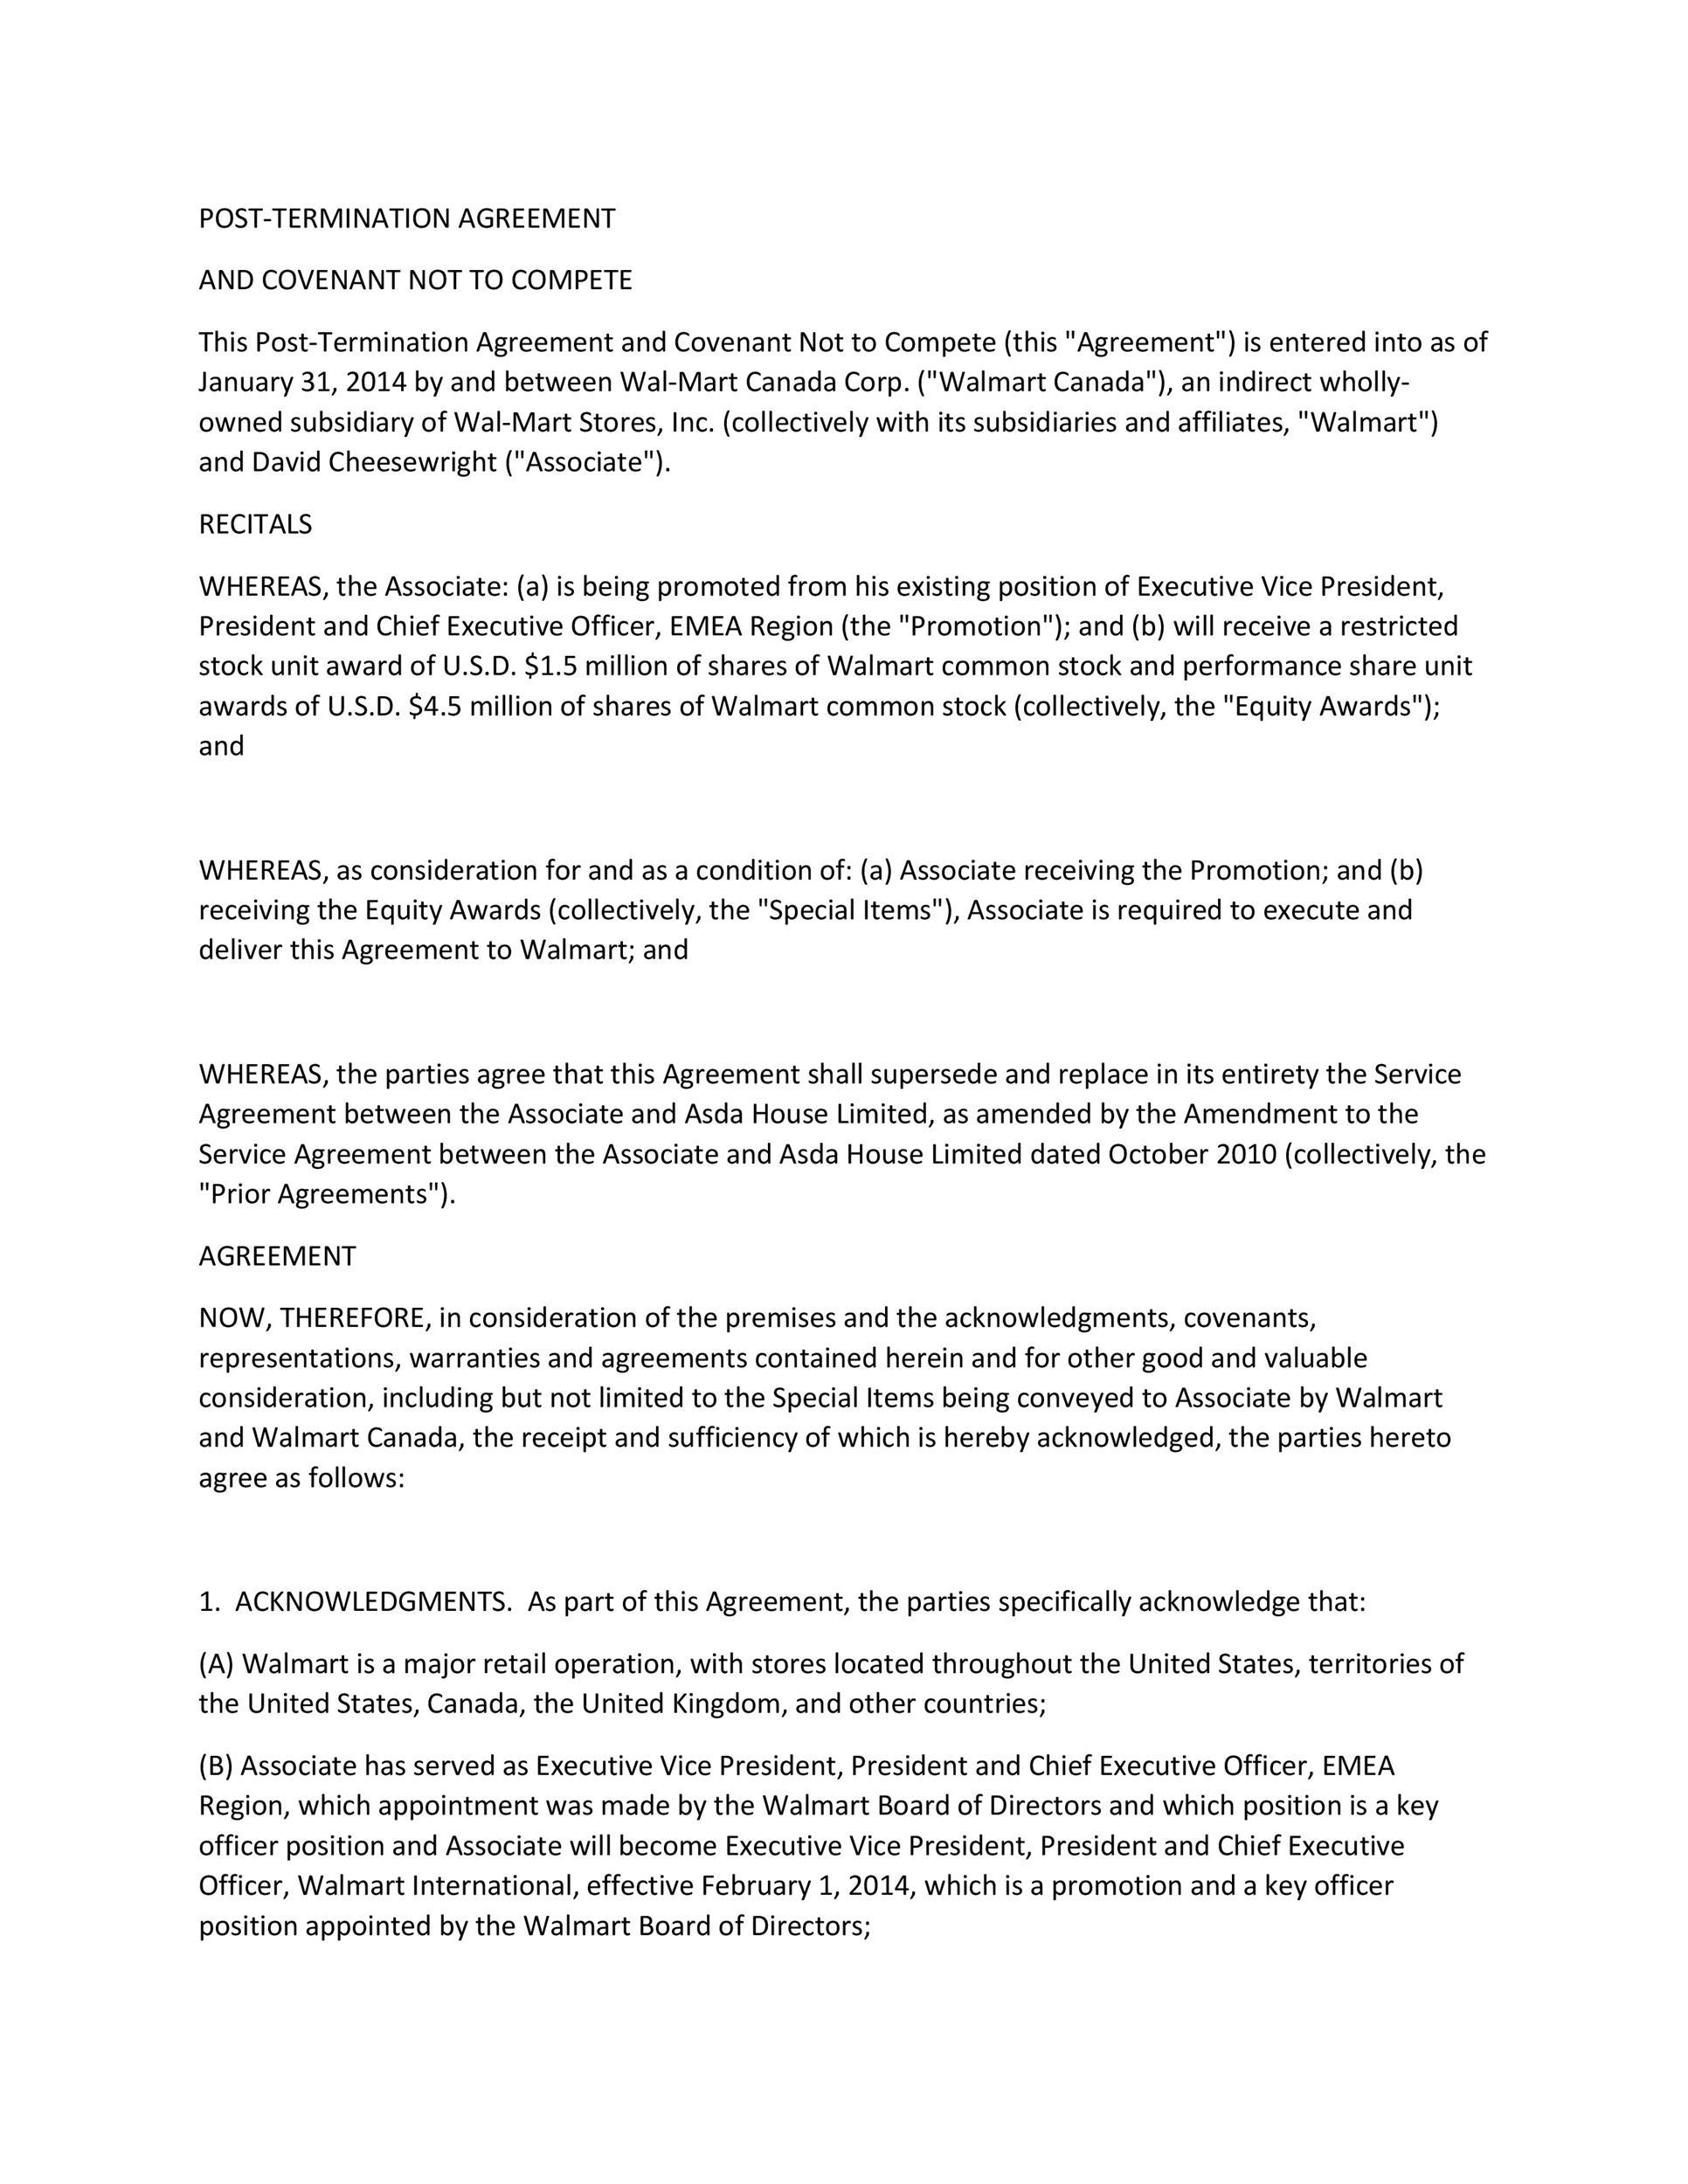 Free Non-Compete Agreement Template 10